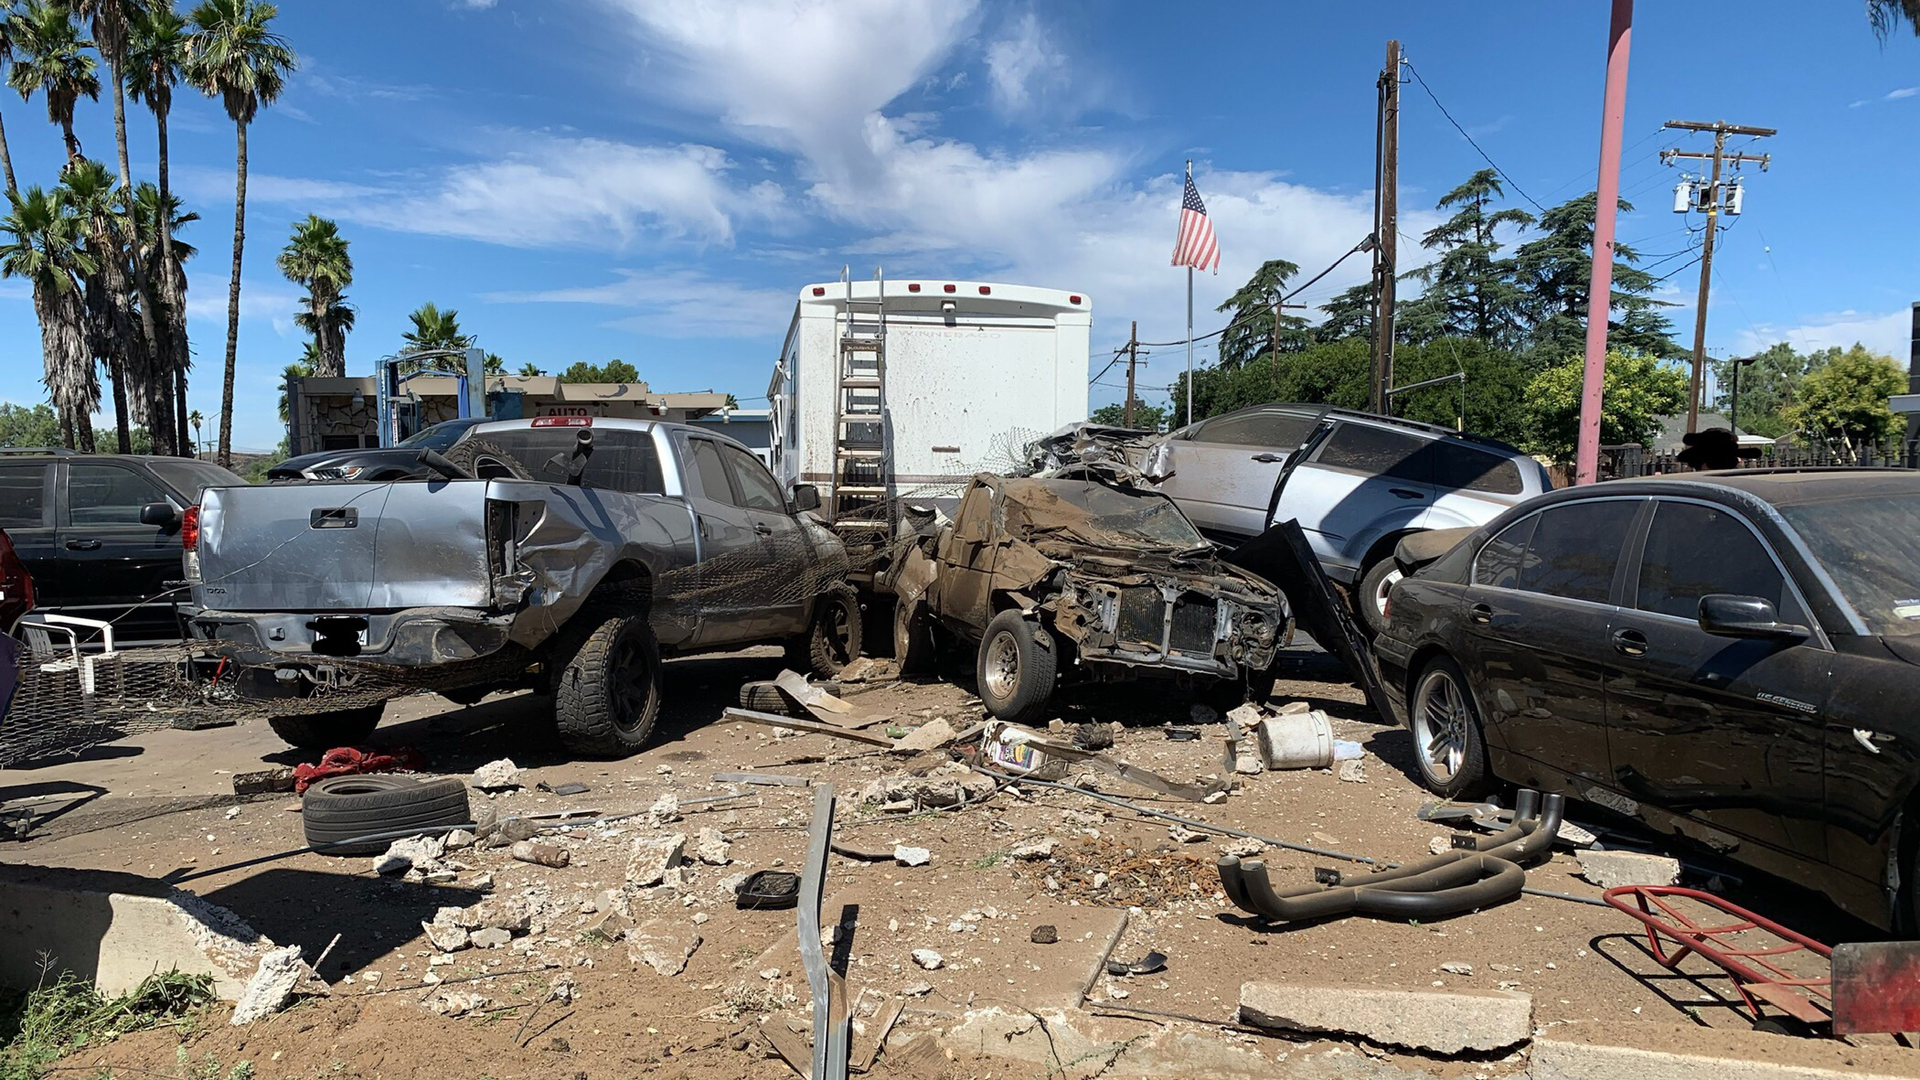 An employee was struck and killed when an SUV sped through the parking lot of a Beaumont auto repair shop on July 19, 2019. (Credit: Beaumont Police Department)